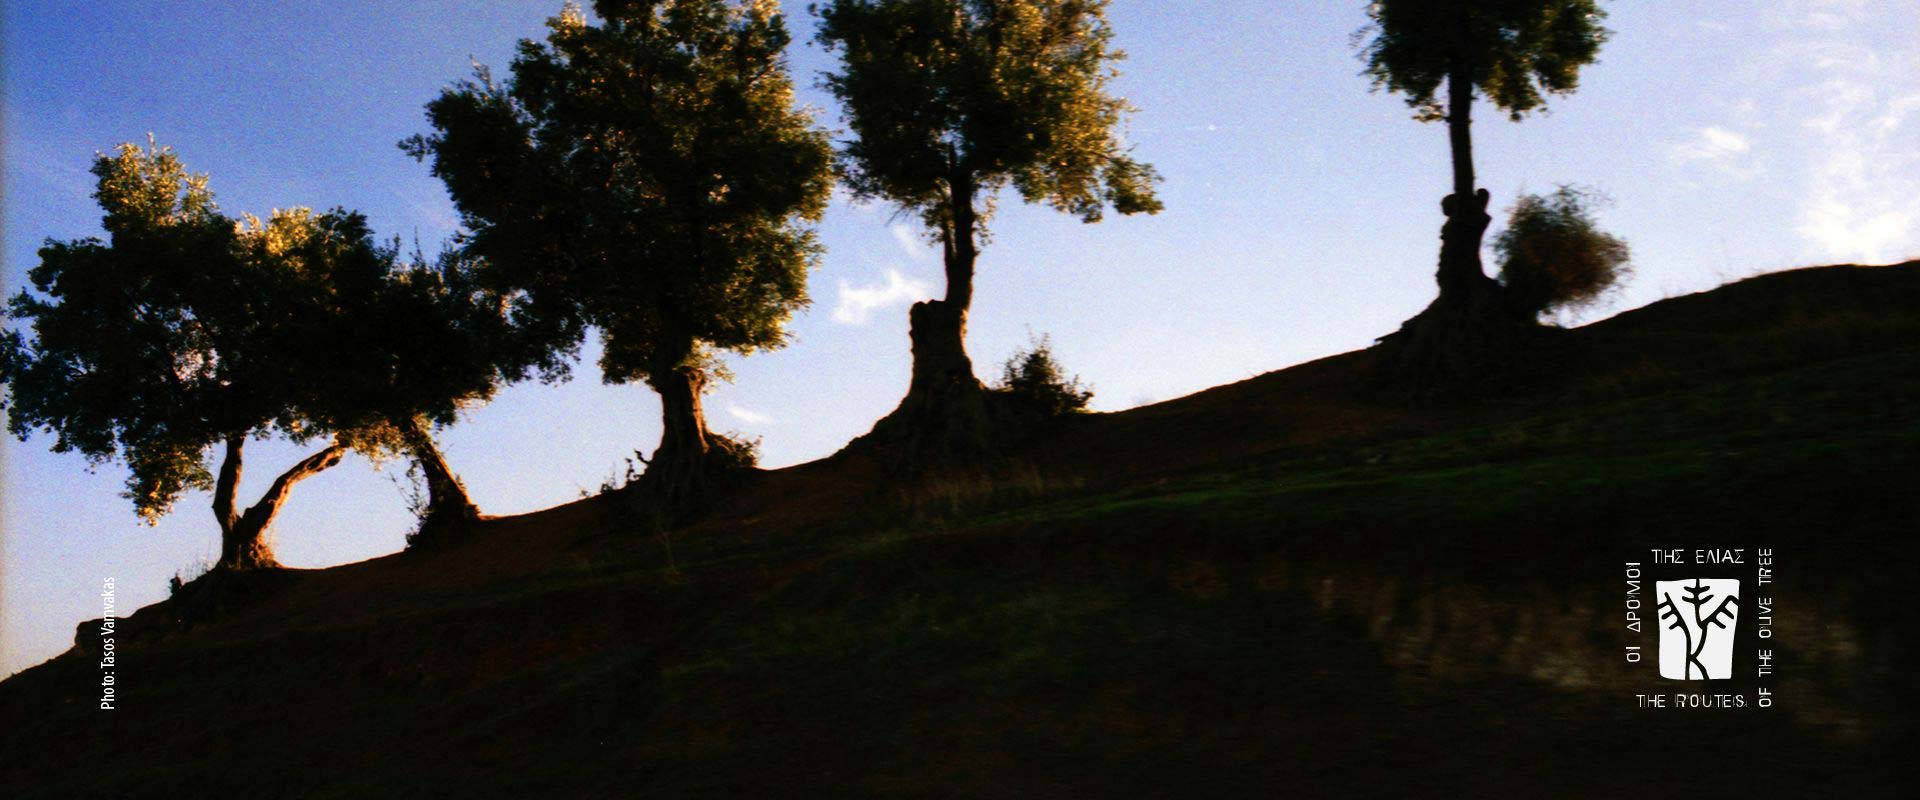 THE ROUTES OF THE OLIVE TREE